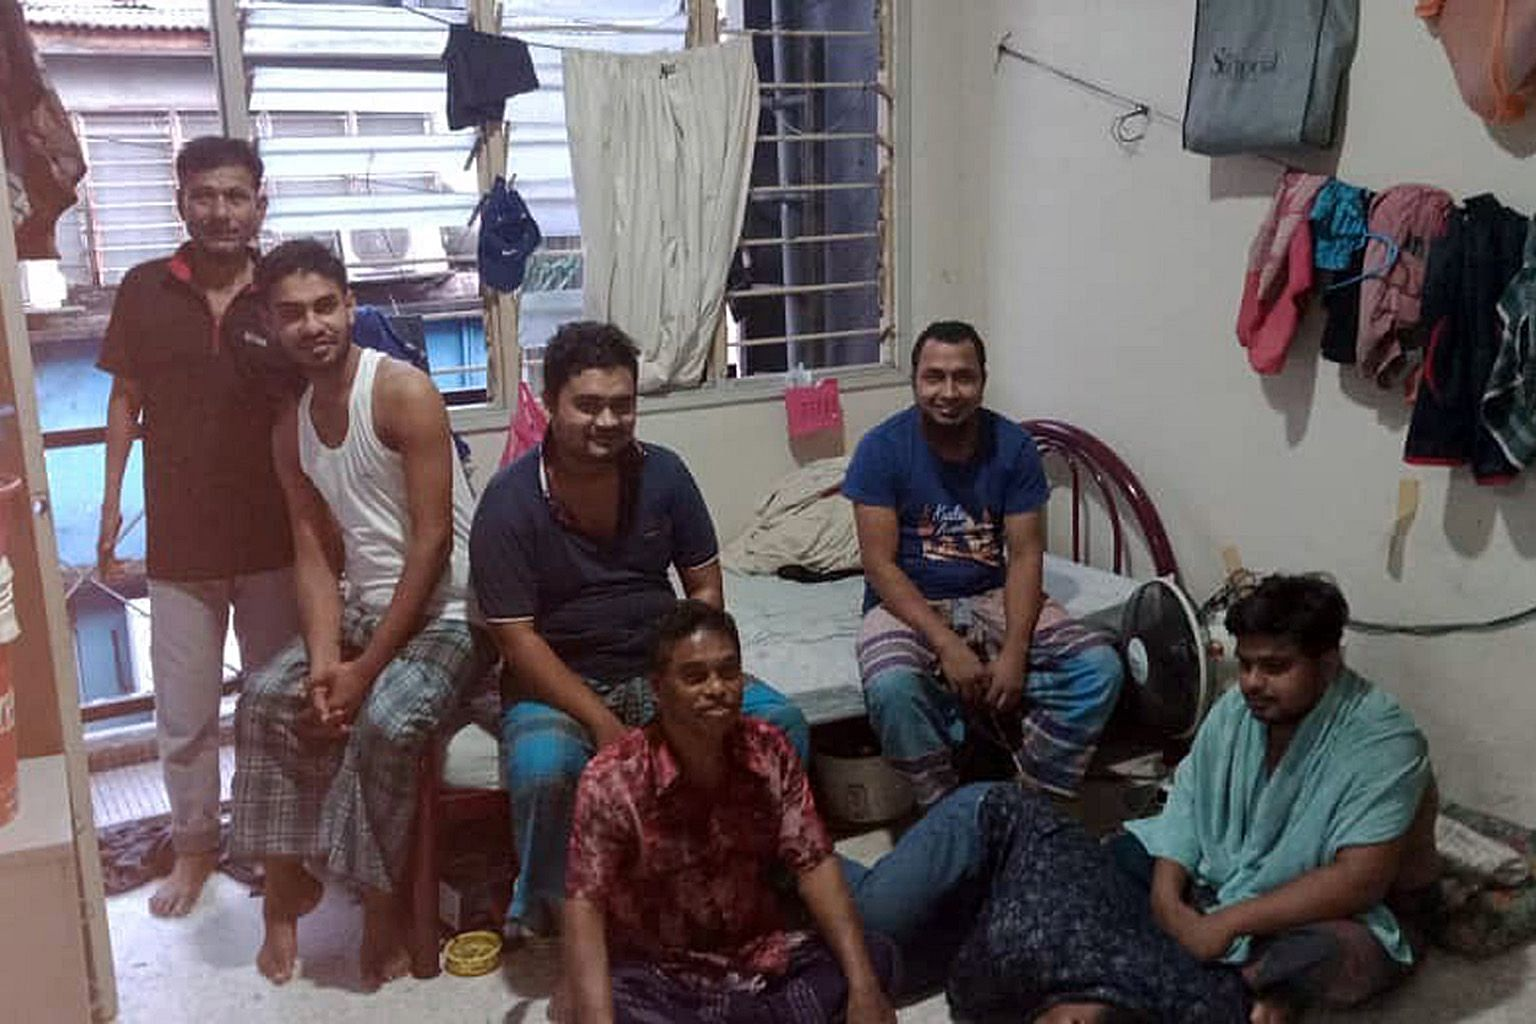 Social distancing is a challenge for these Bangladeshi migrant workers, cooped up in their shared living quarters in Petaling Jaya, Selangor, due to the movement control order.